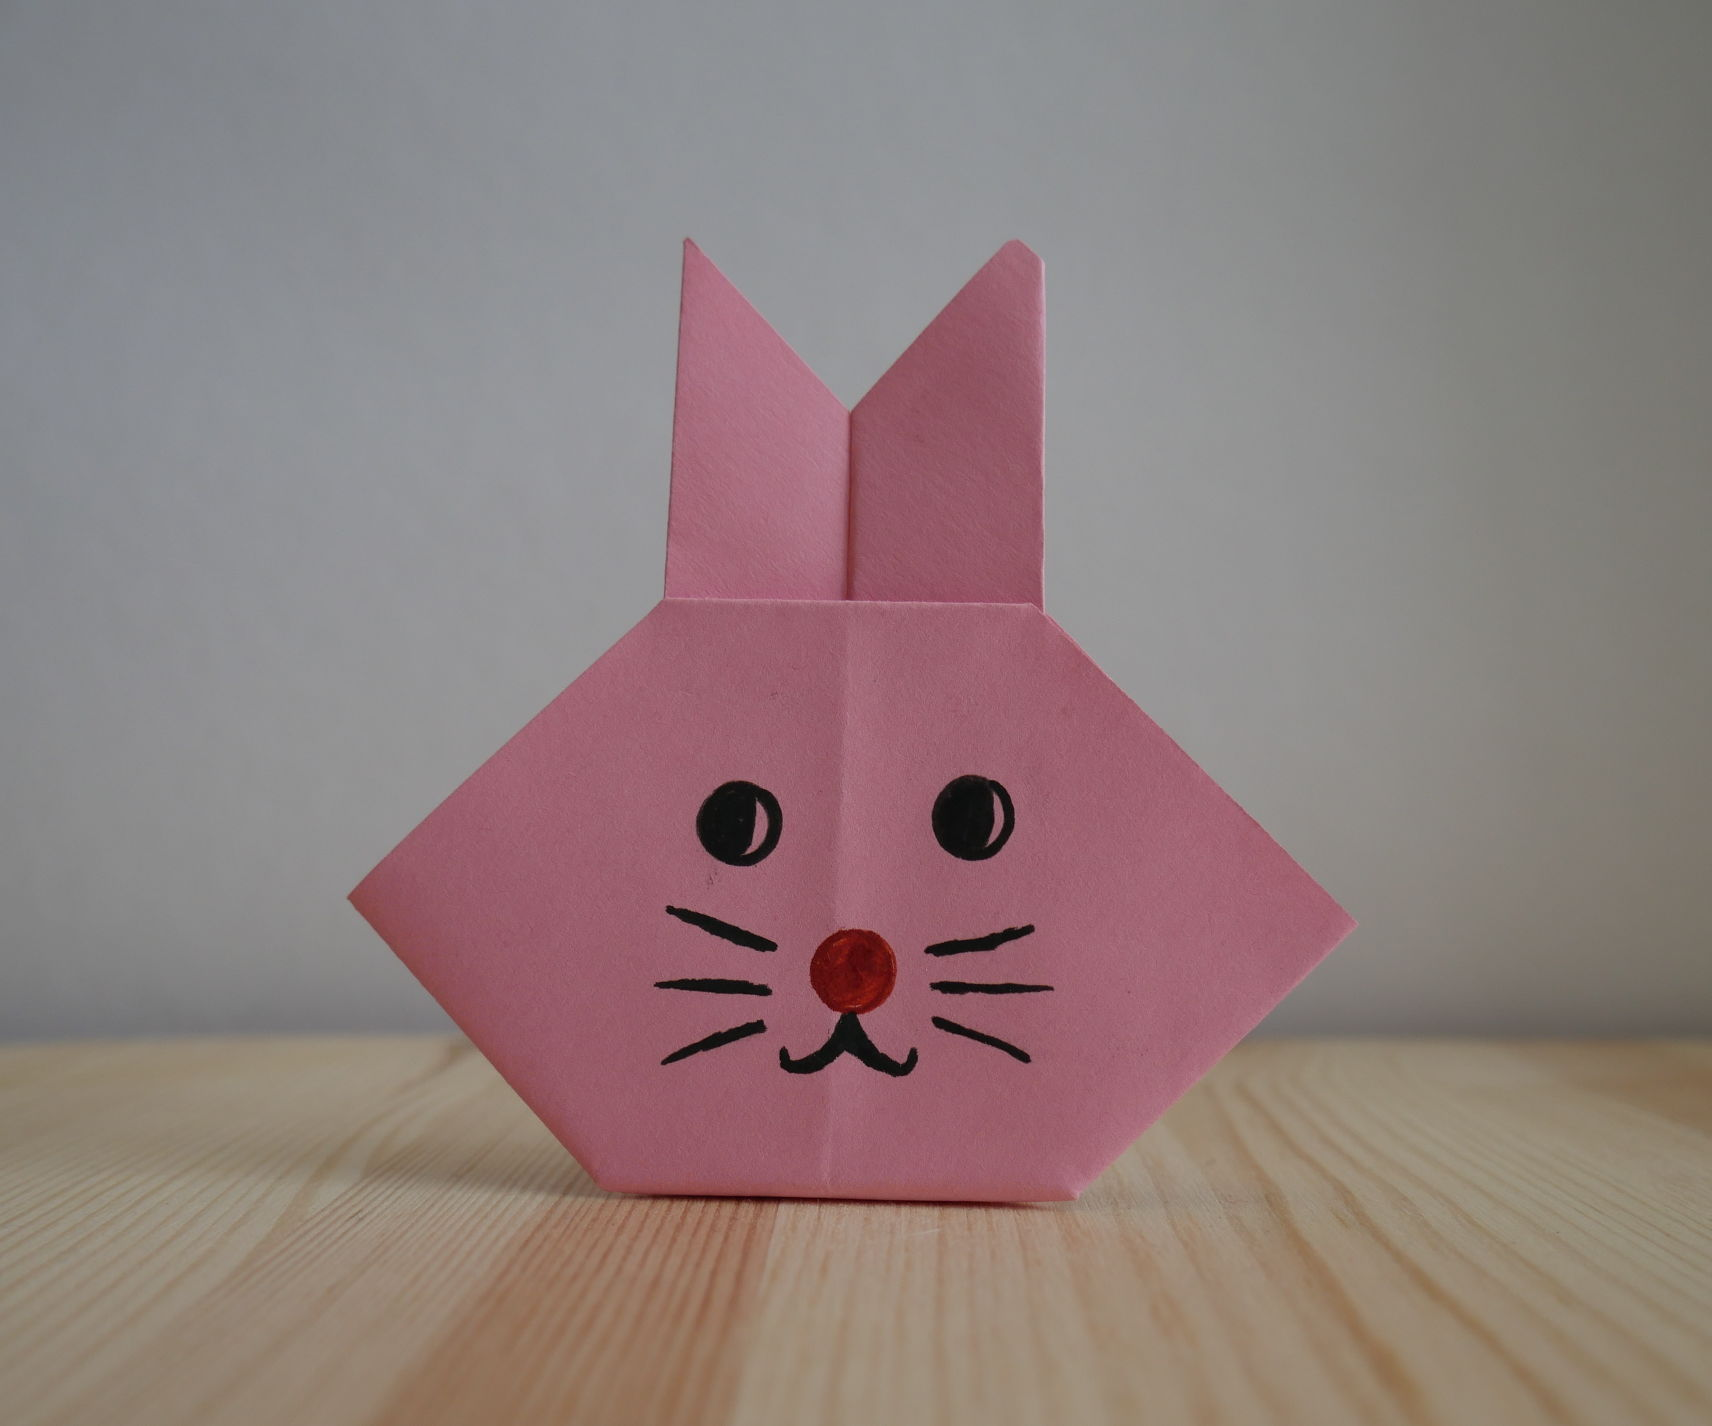 Origami. How to Make a Hare